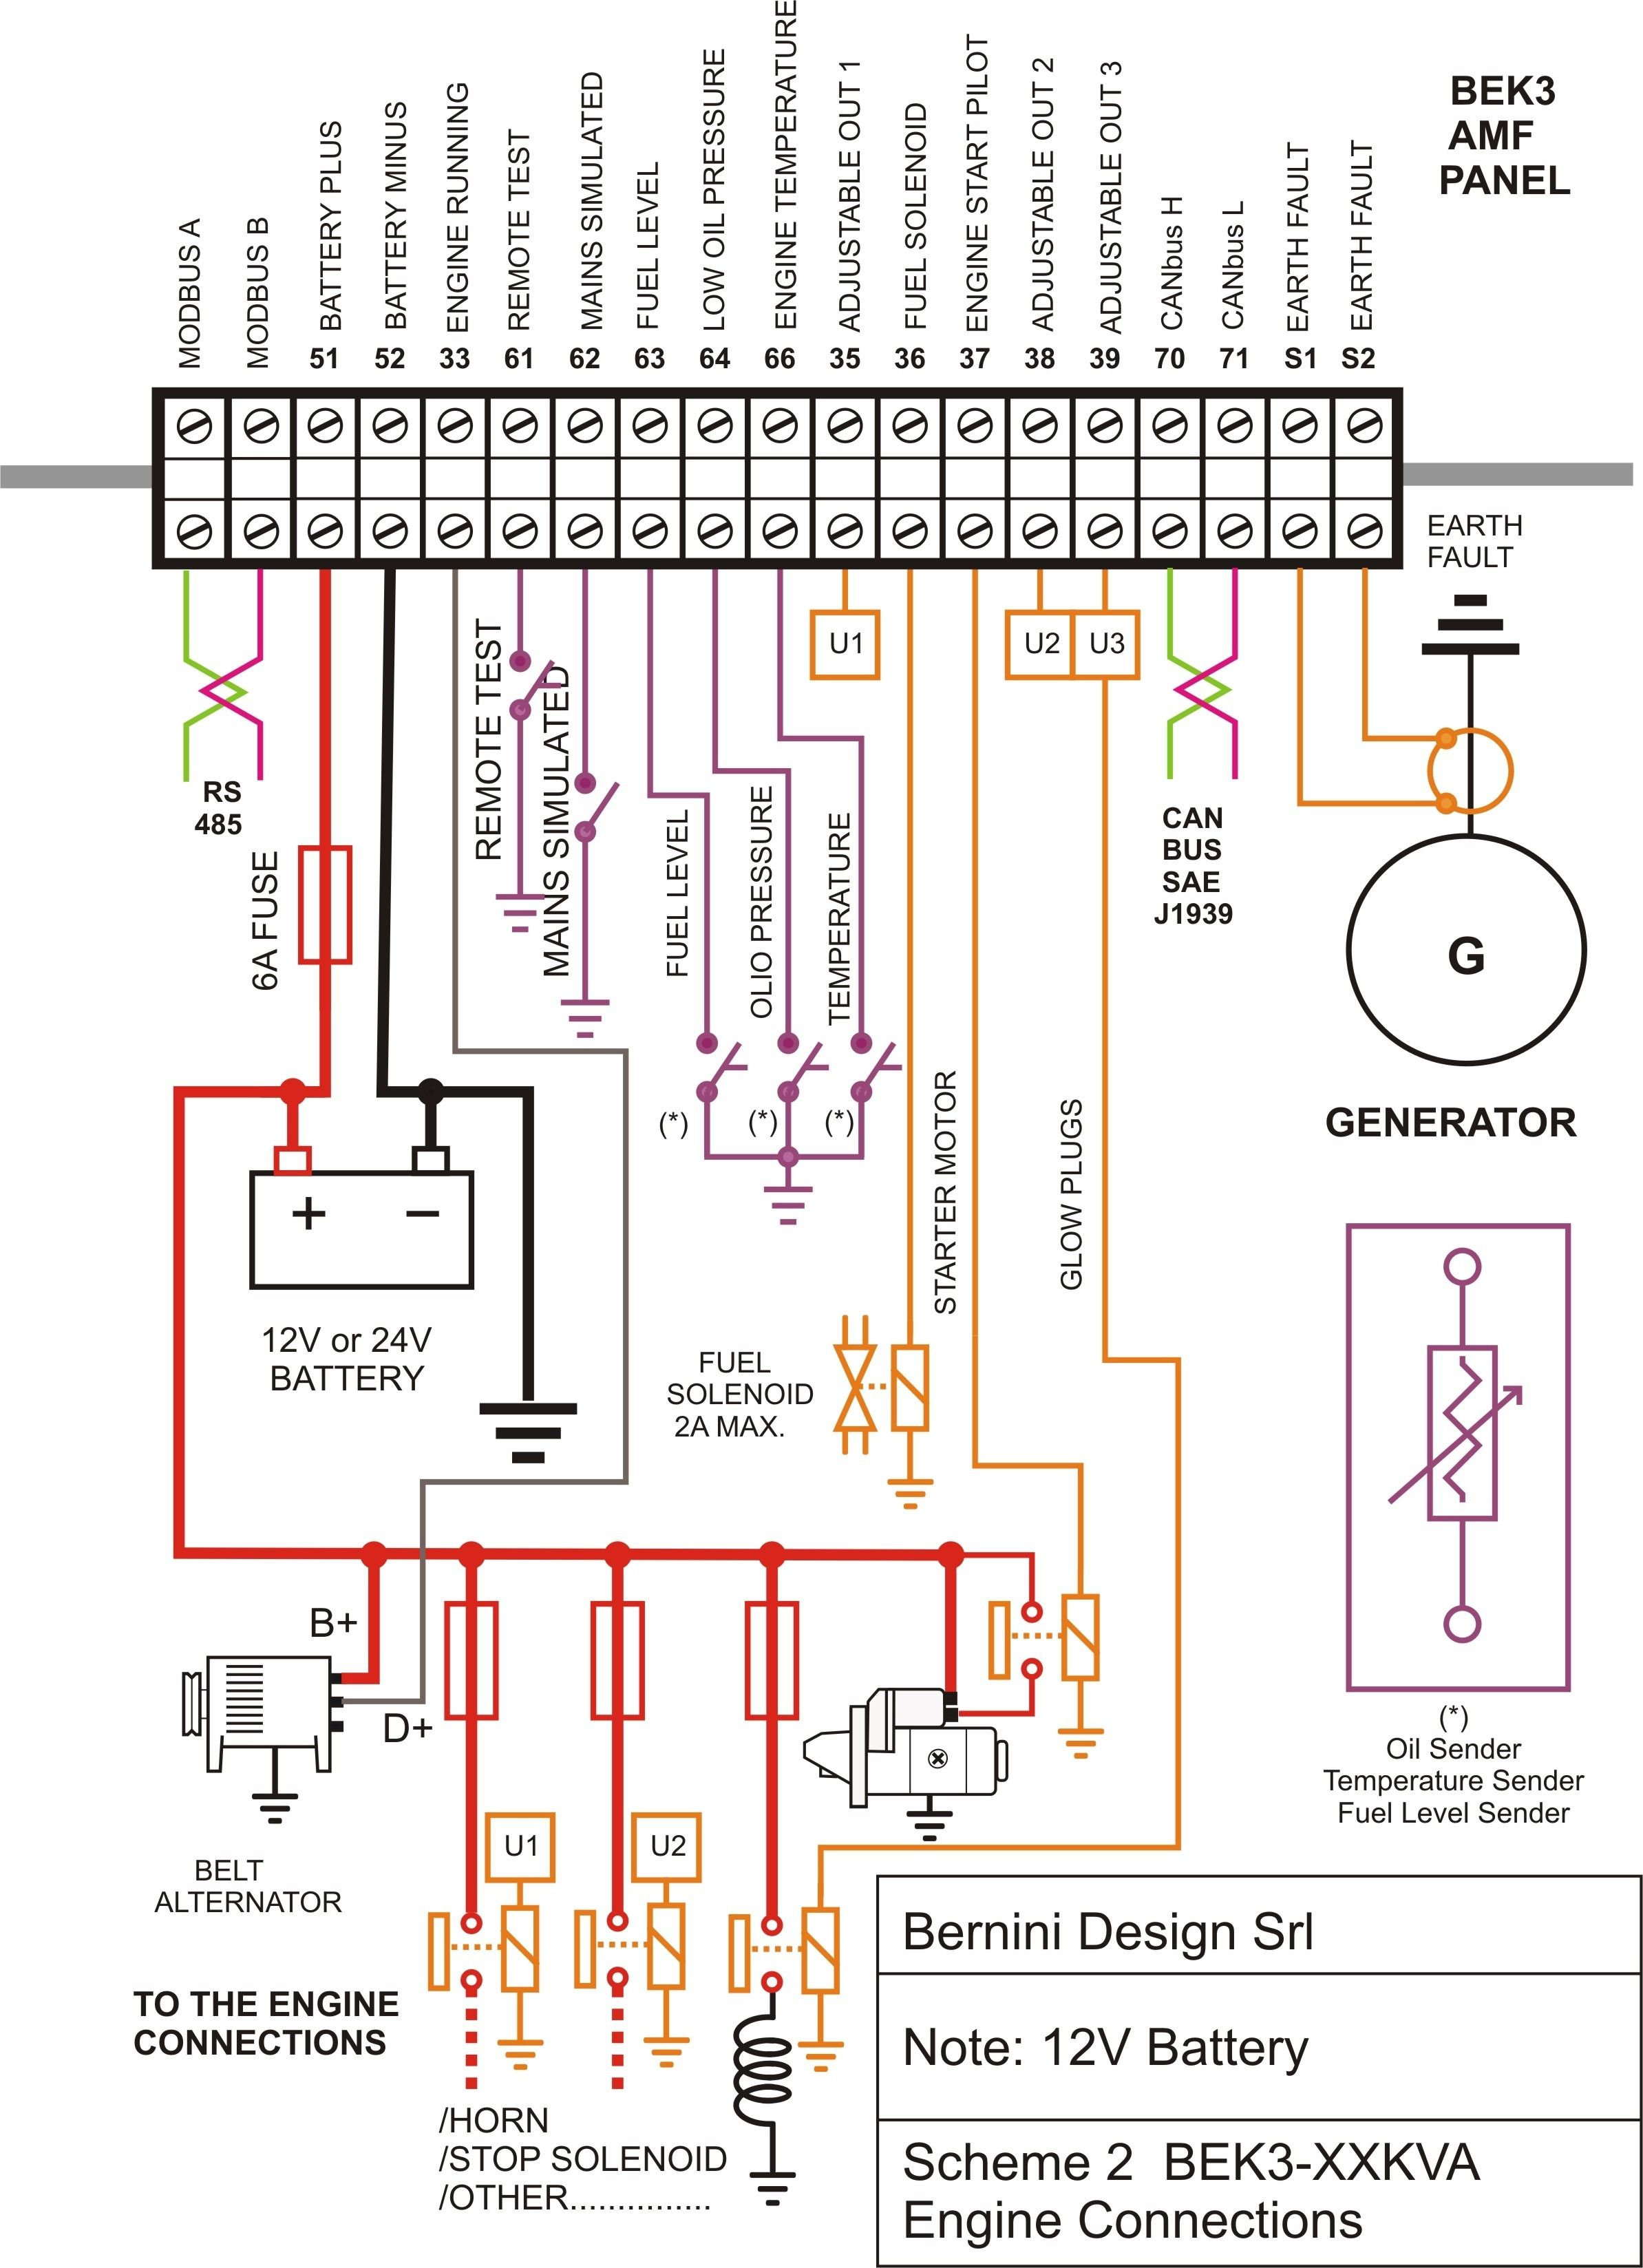 Basic Electrical Wiring Diagram Pdf | WiringDiagram | wiringdiagram in 2019 | Electrical